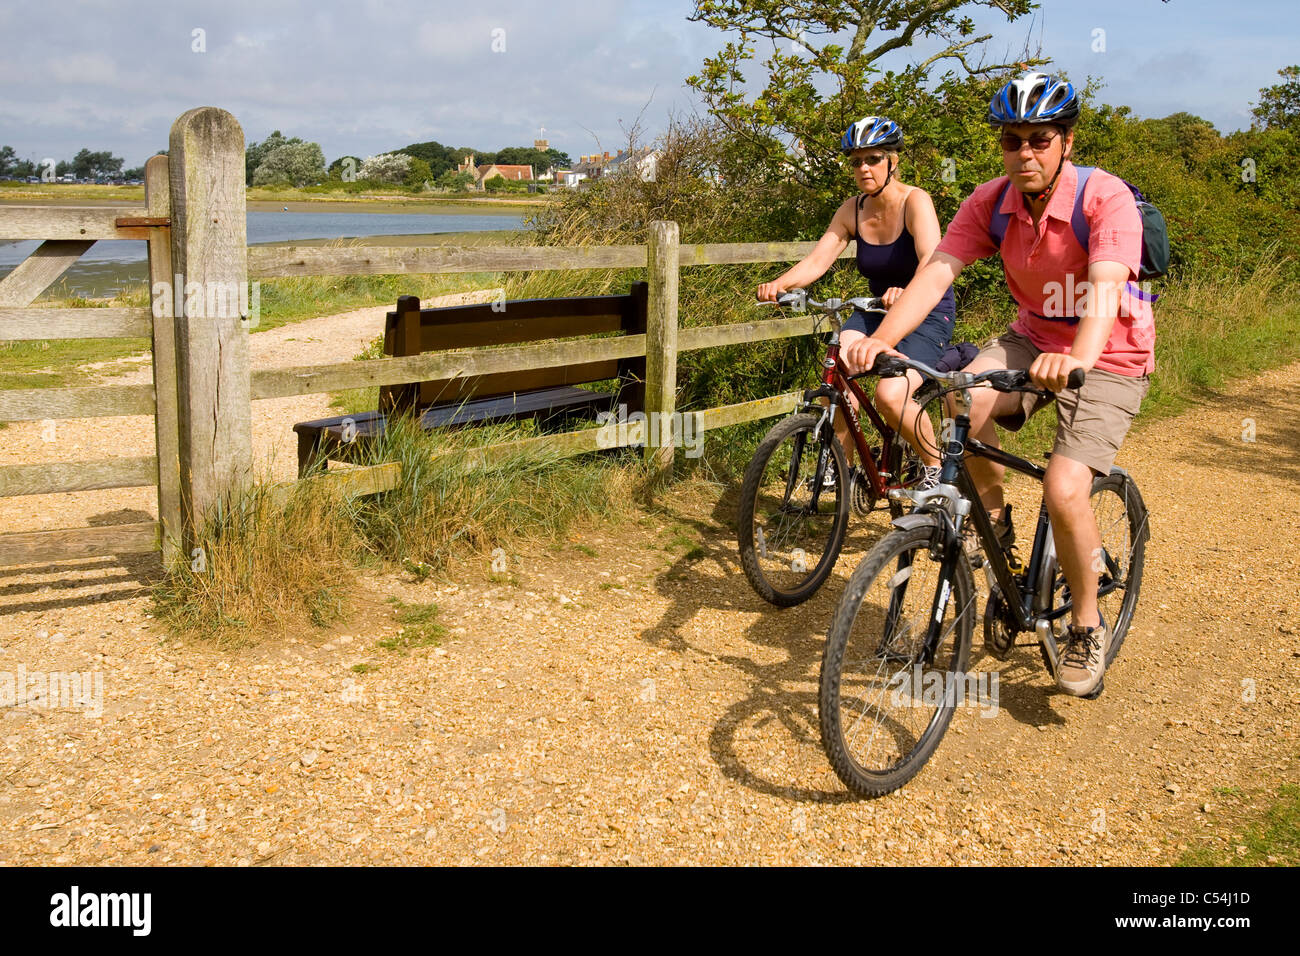 Cyclists, Bridleway, Yarmouth, to, Freshwater, Isle of Wight, England, UK, - Stock Image